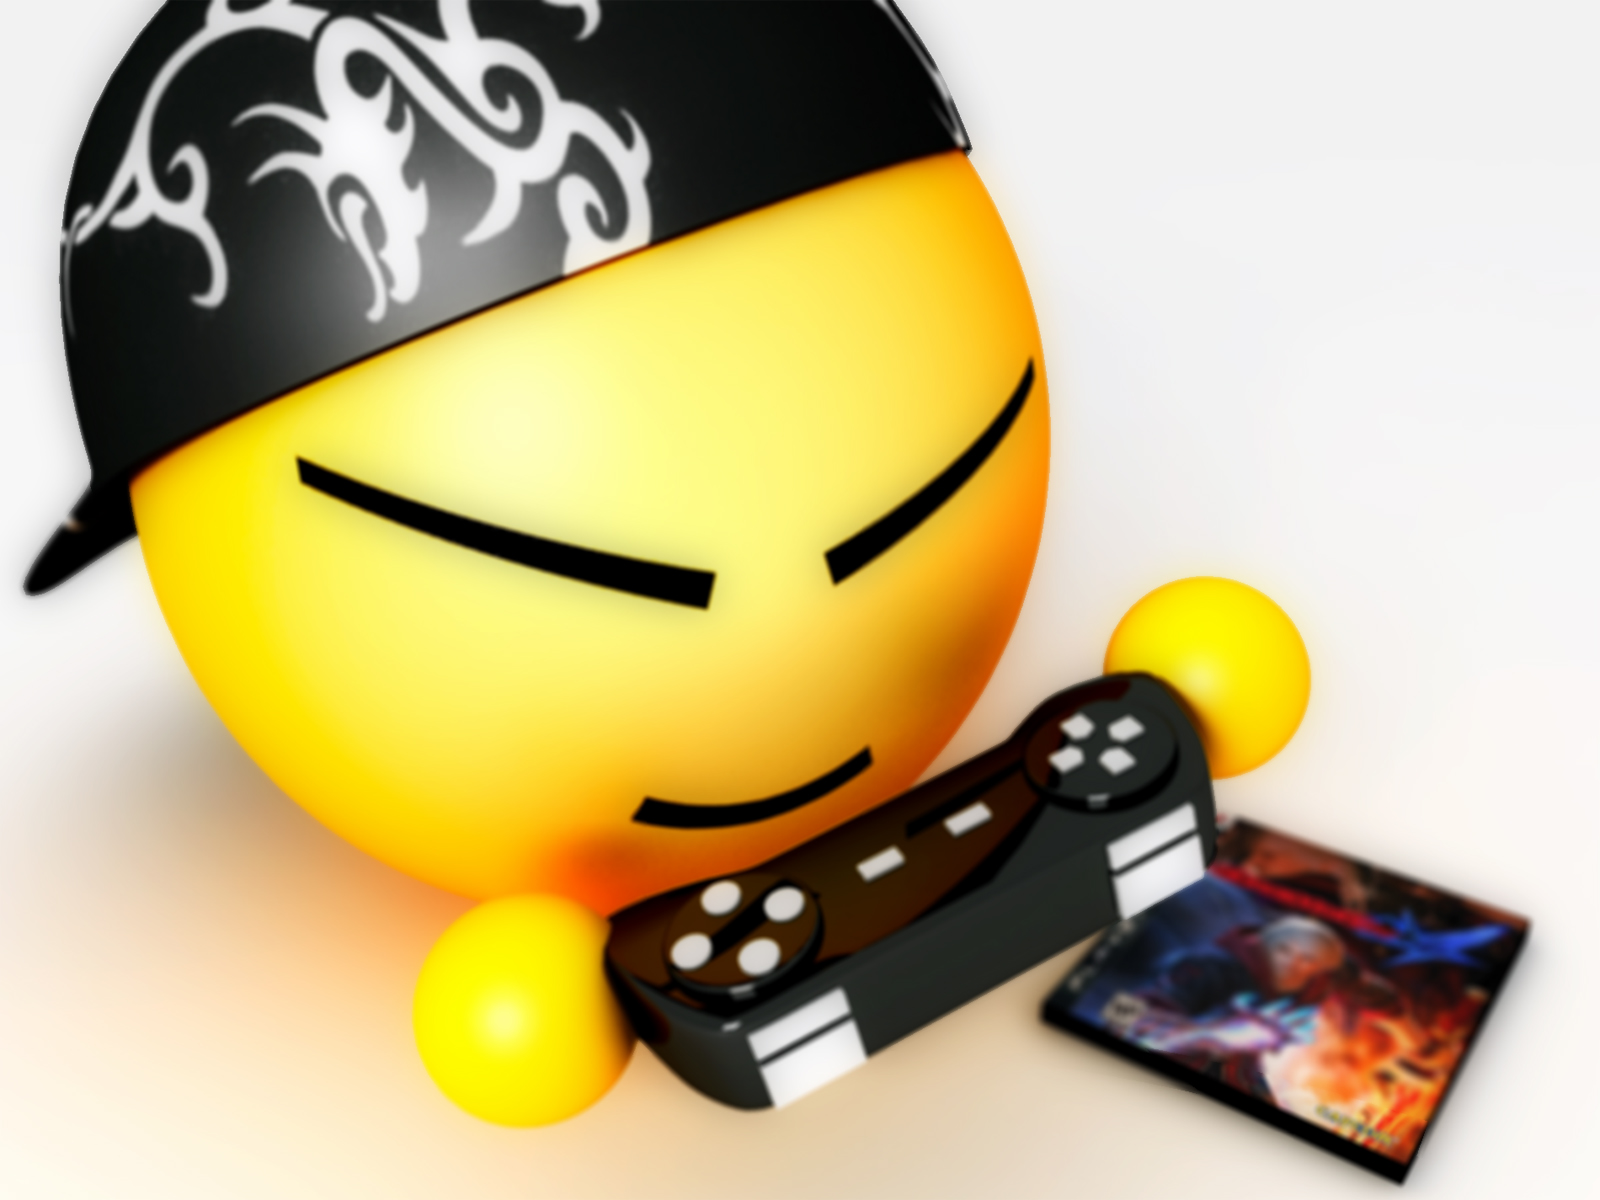 25+ Gamer Cartoon Wallpaper Pics